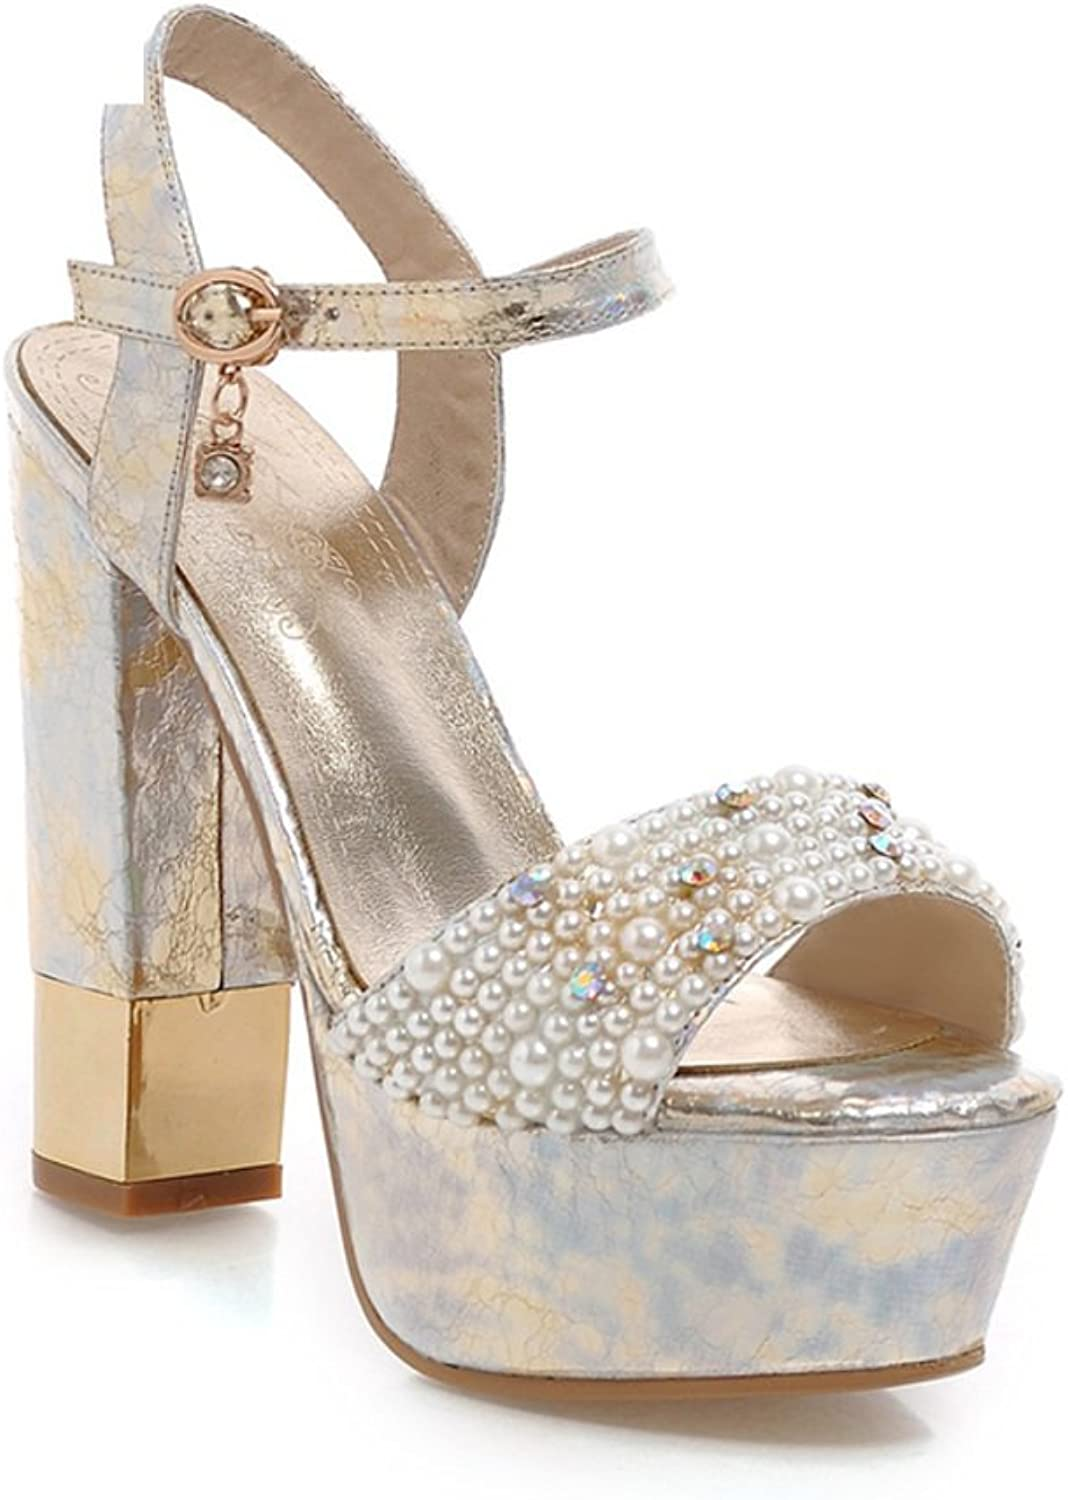 RHFDVGDS Summer fashion Sandals coarse to sexy party shoes Pearl Crystal shoes Always buckle ladies Sandals